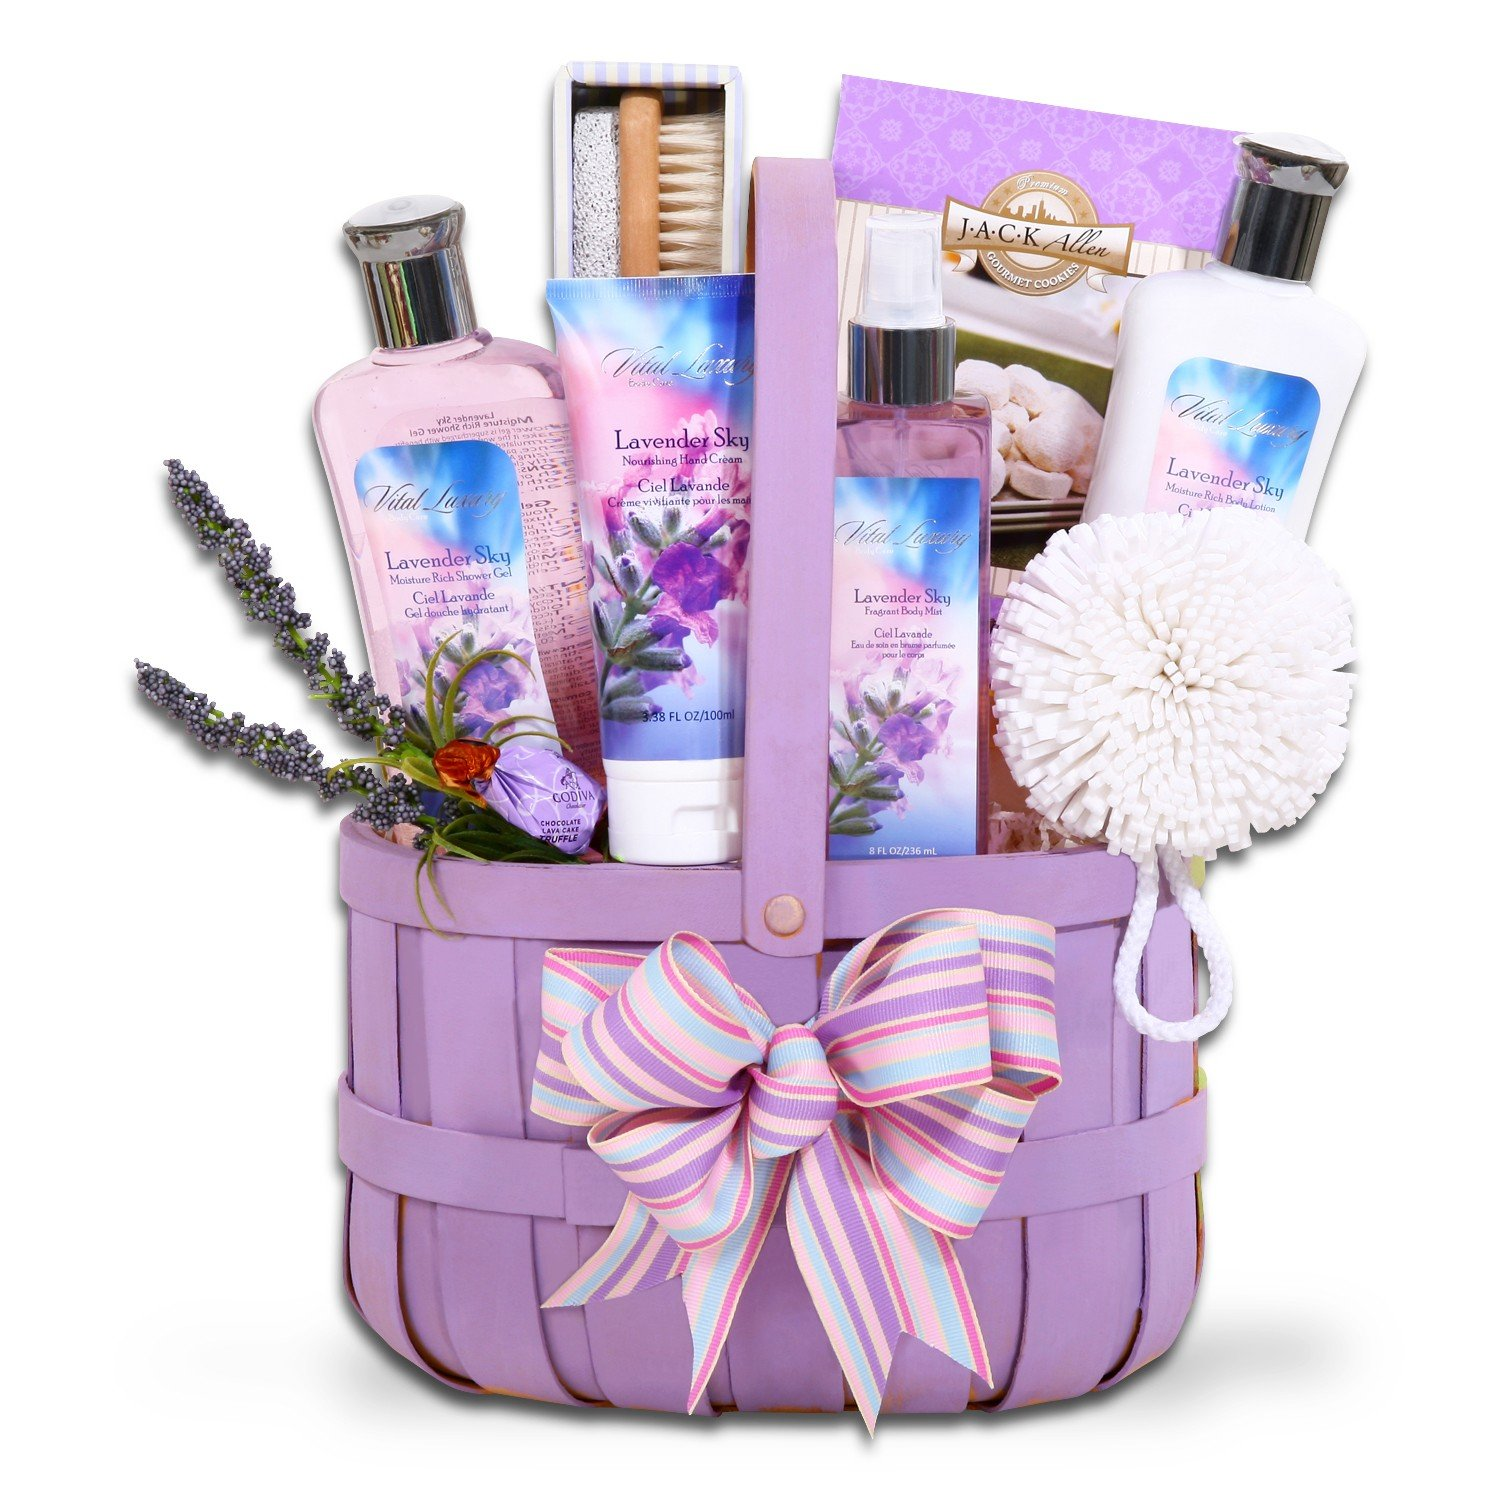 Lavender Relaxation Spa Gift Basket for Her - Perfect Gift for Easter, Mothers Day or Birthday